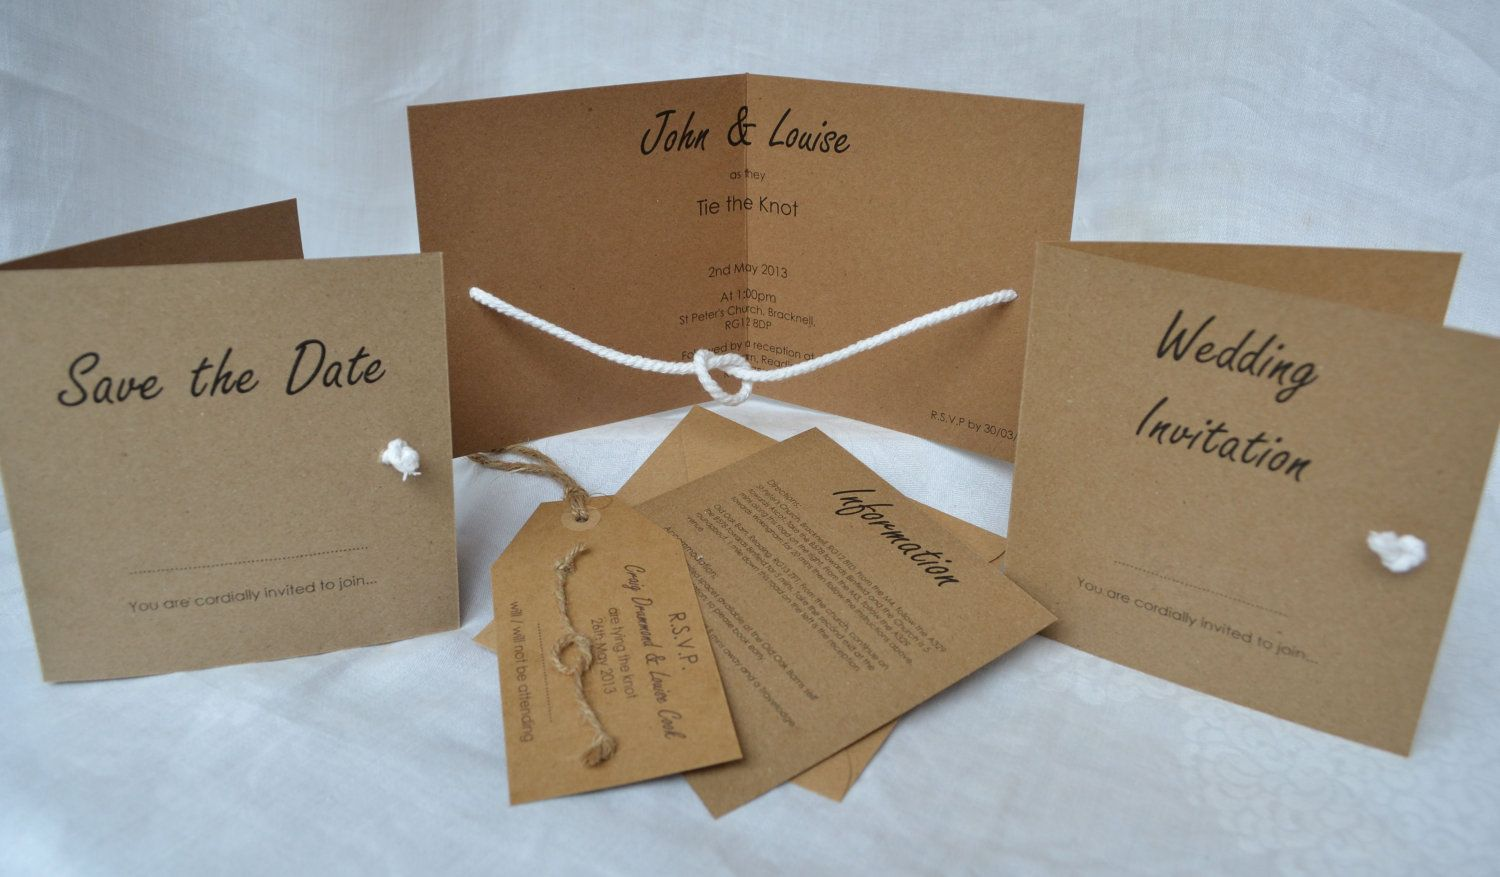 New Designtie The Knot Folded Wedding Invite Rsvp Kraft Card Tie The Knot  Folded Wedding Invite